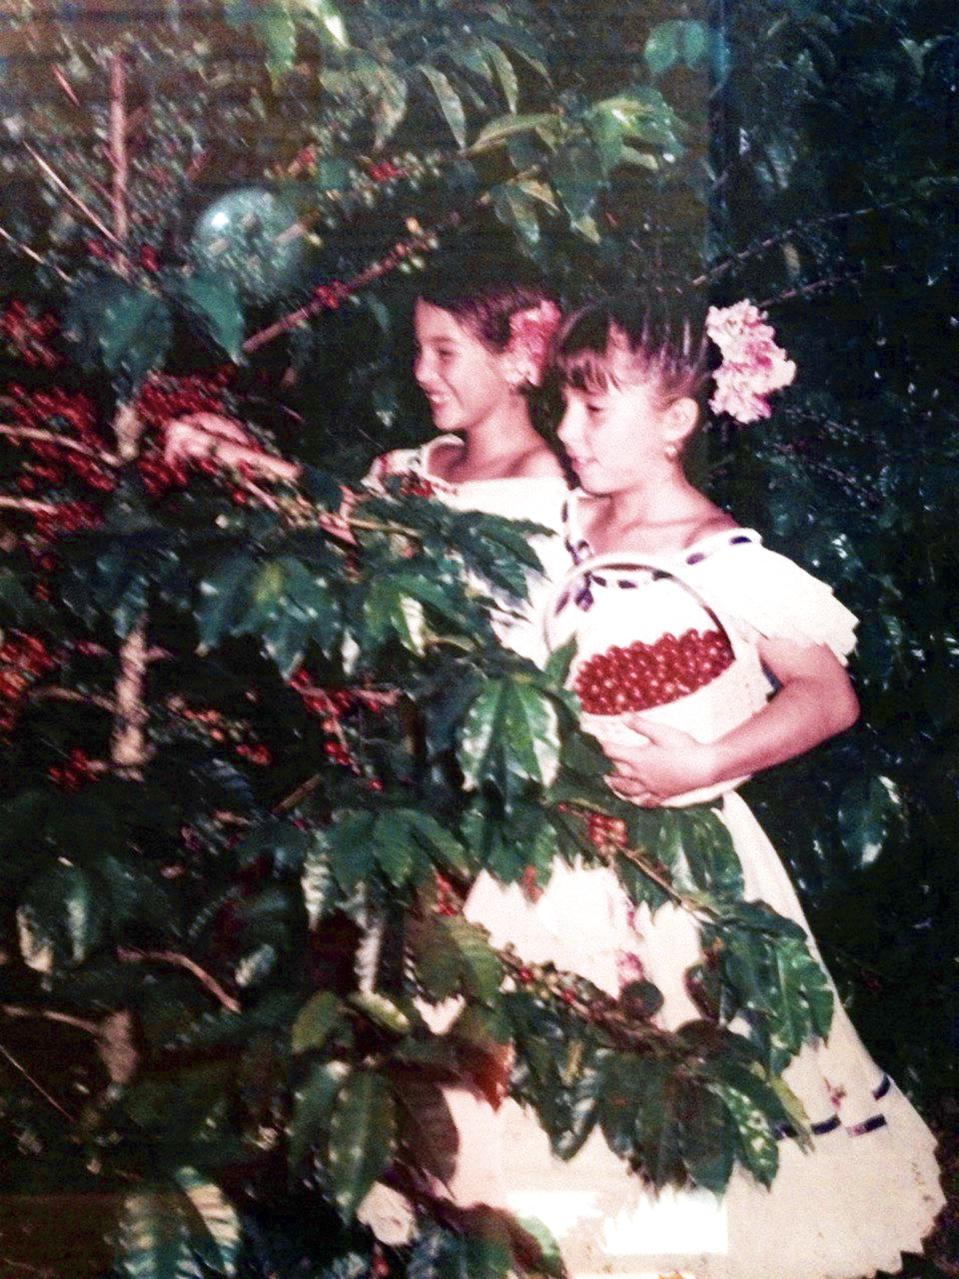 Progeny Coffee's founder Maria Palacio at 12 years old picking coffee on her father's coffee farm in Colombia.